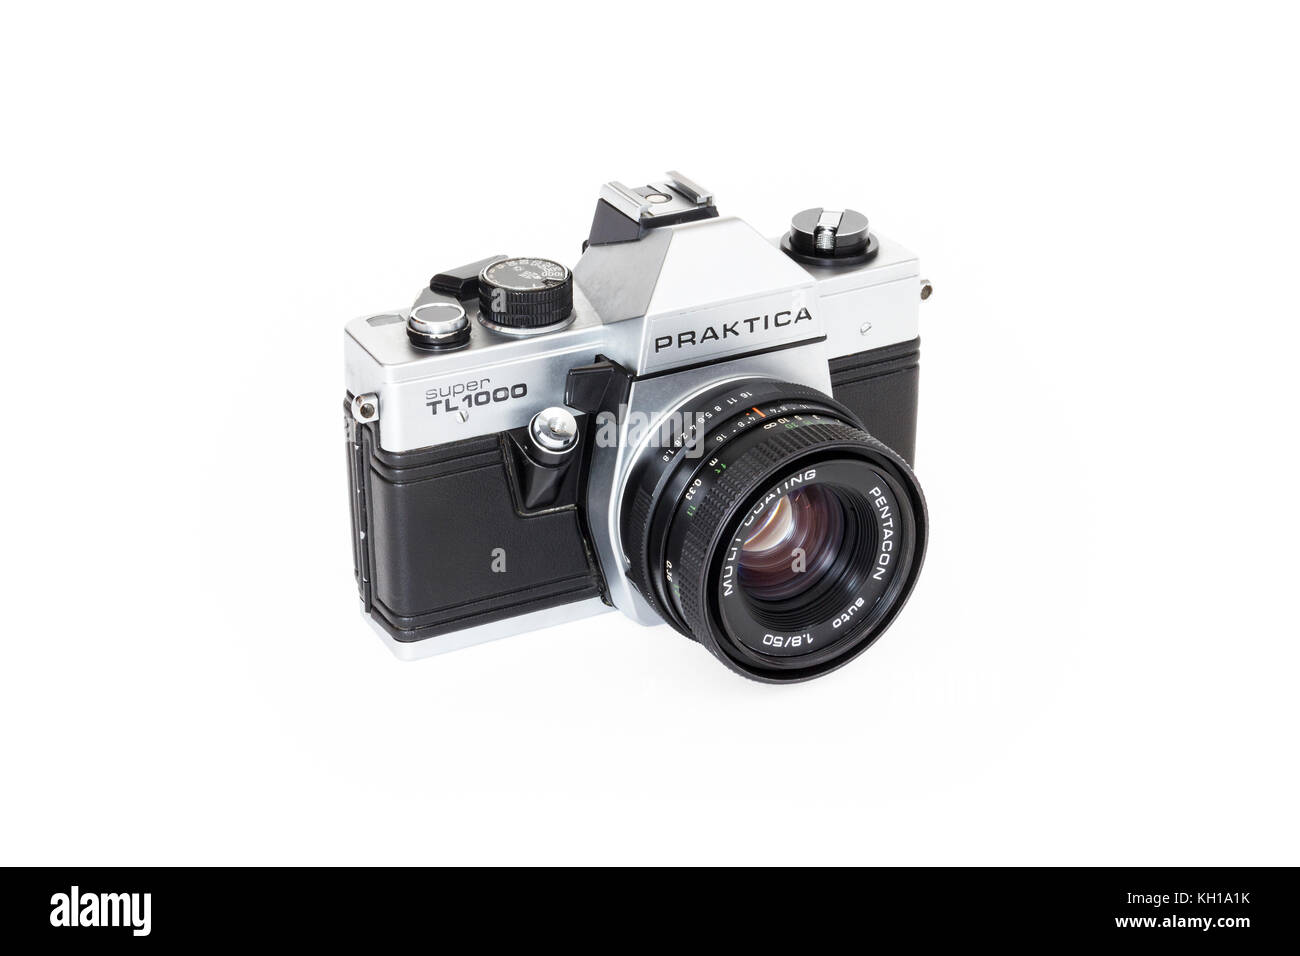 Praktica Super TL1000 35mm roll film SLR camera with 50mm Pentacon lens, 1980s, isolated against a white background - Stock Image